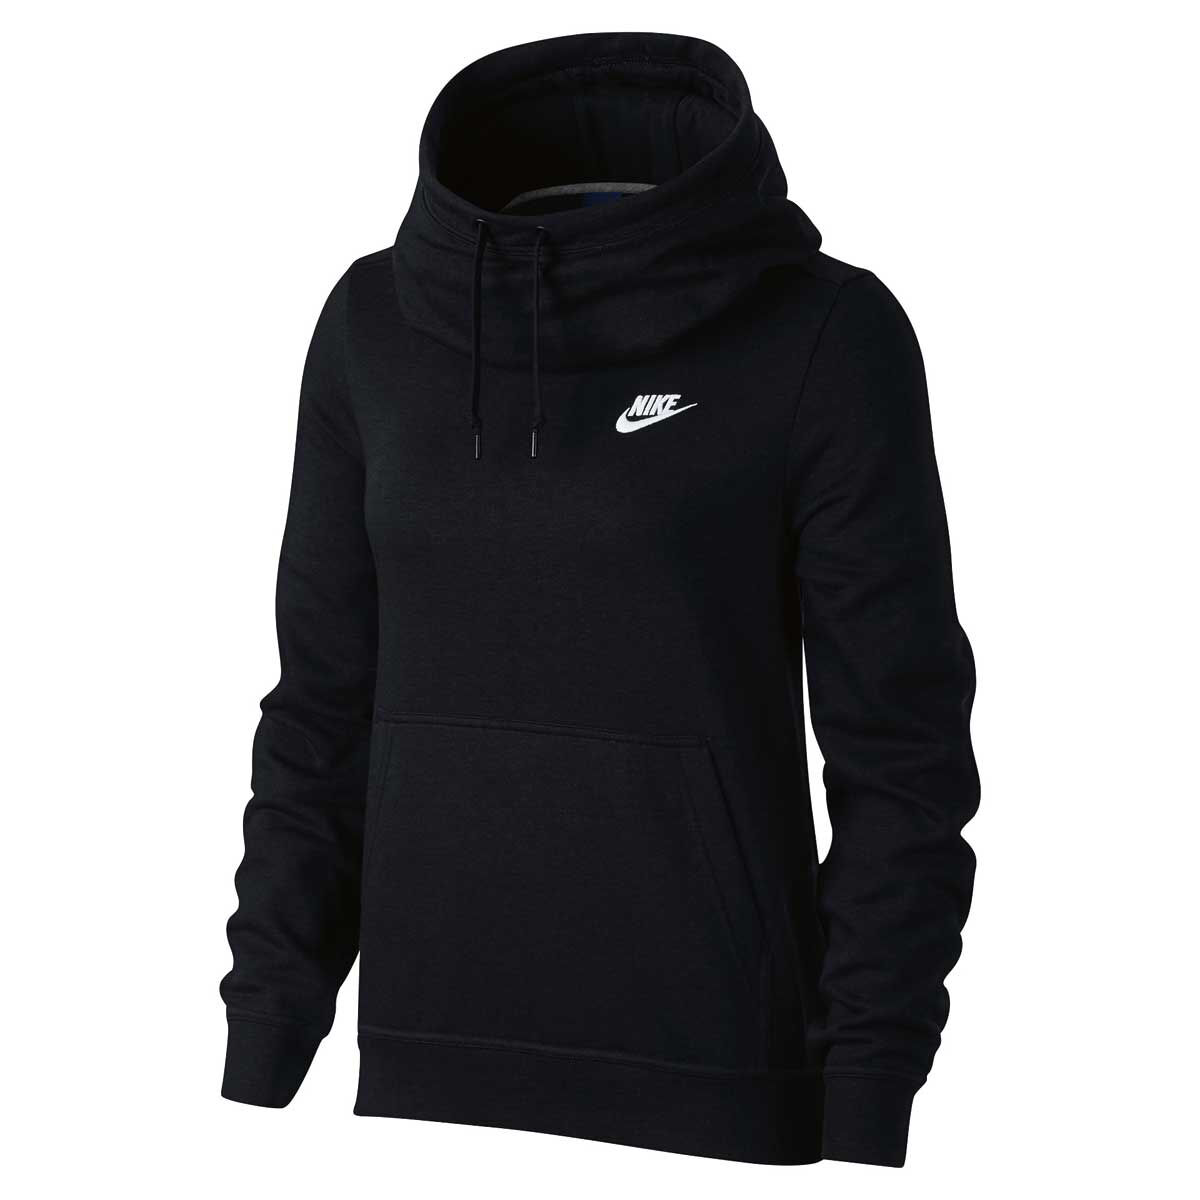 Womens Jackets & Hoodies Clothing rebel  for sale